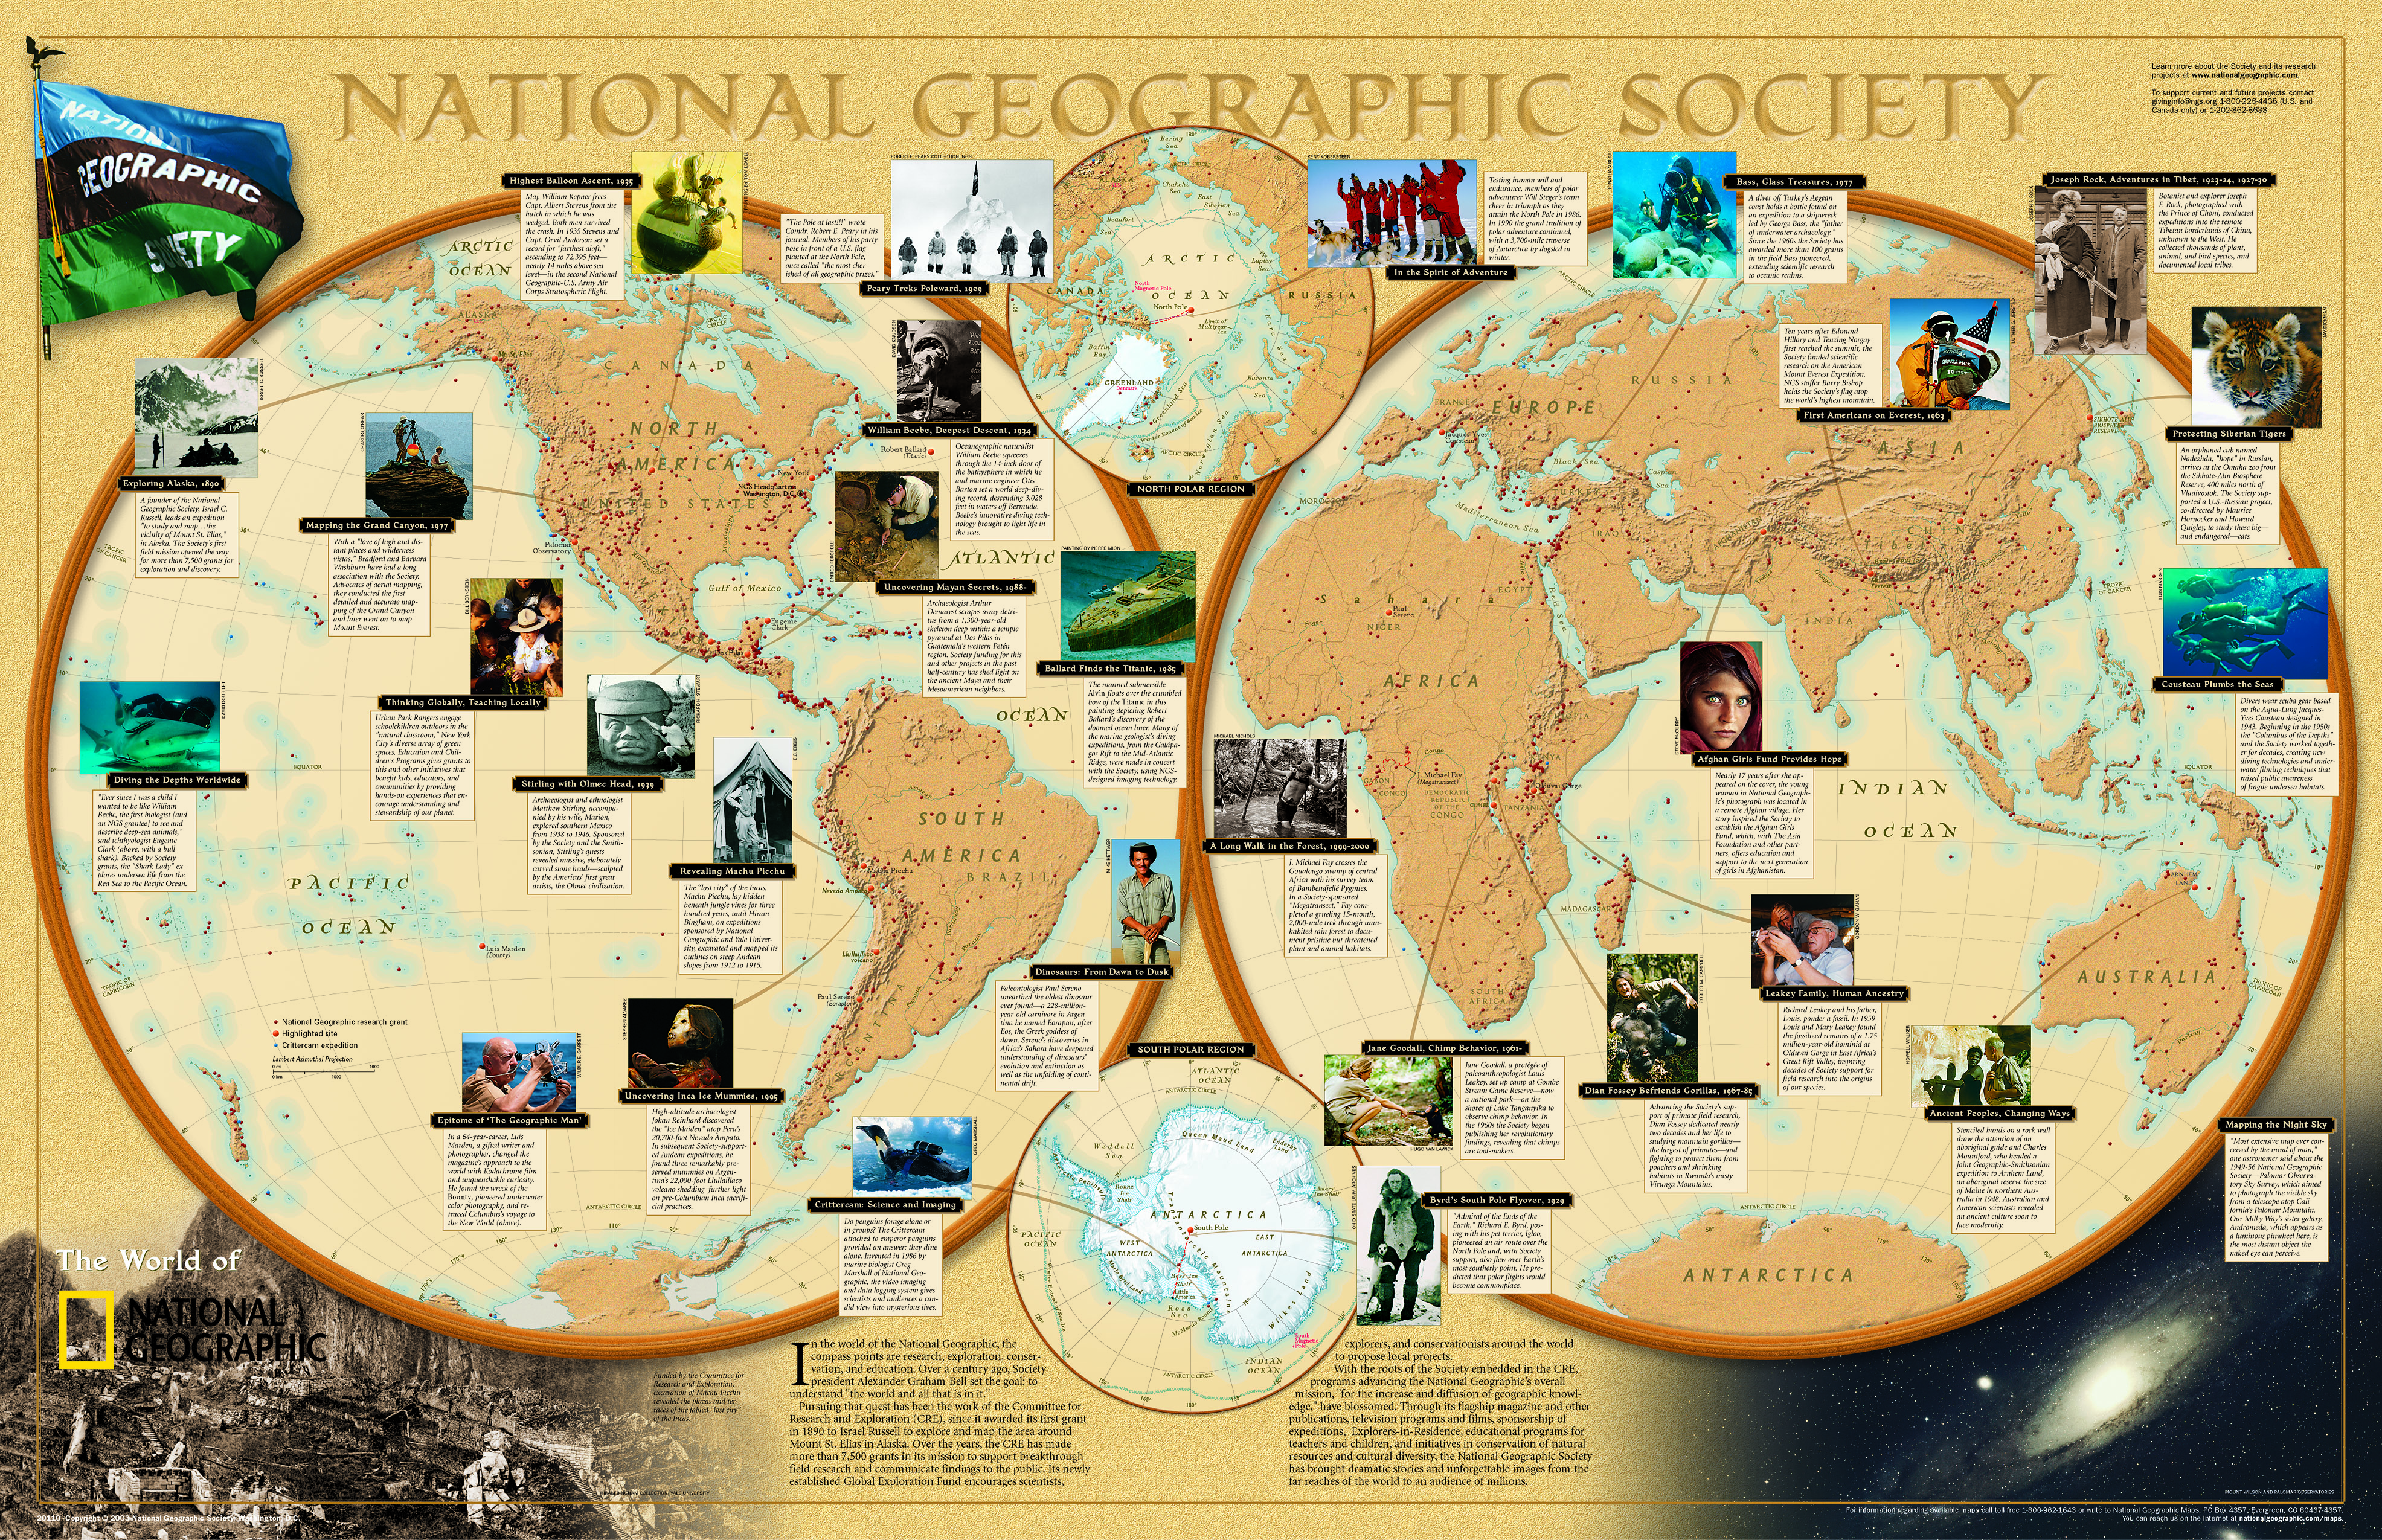 Ngs world of the national geographic society gumiabroncs Image collections